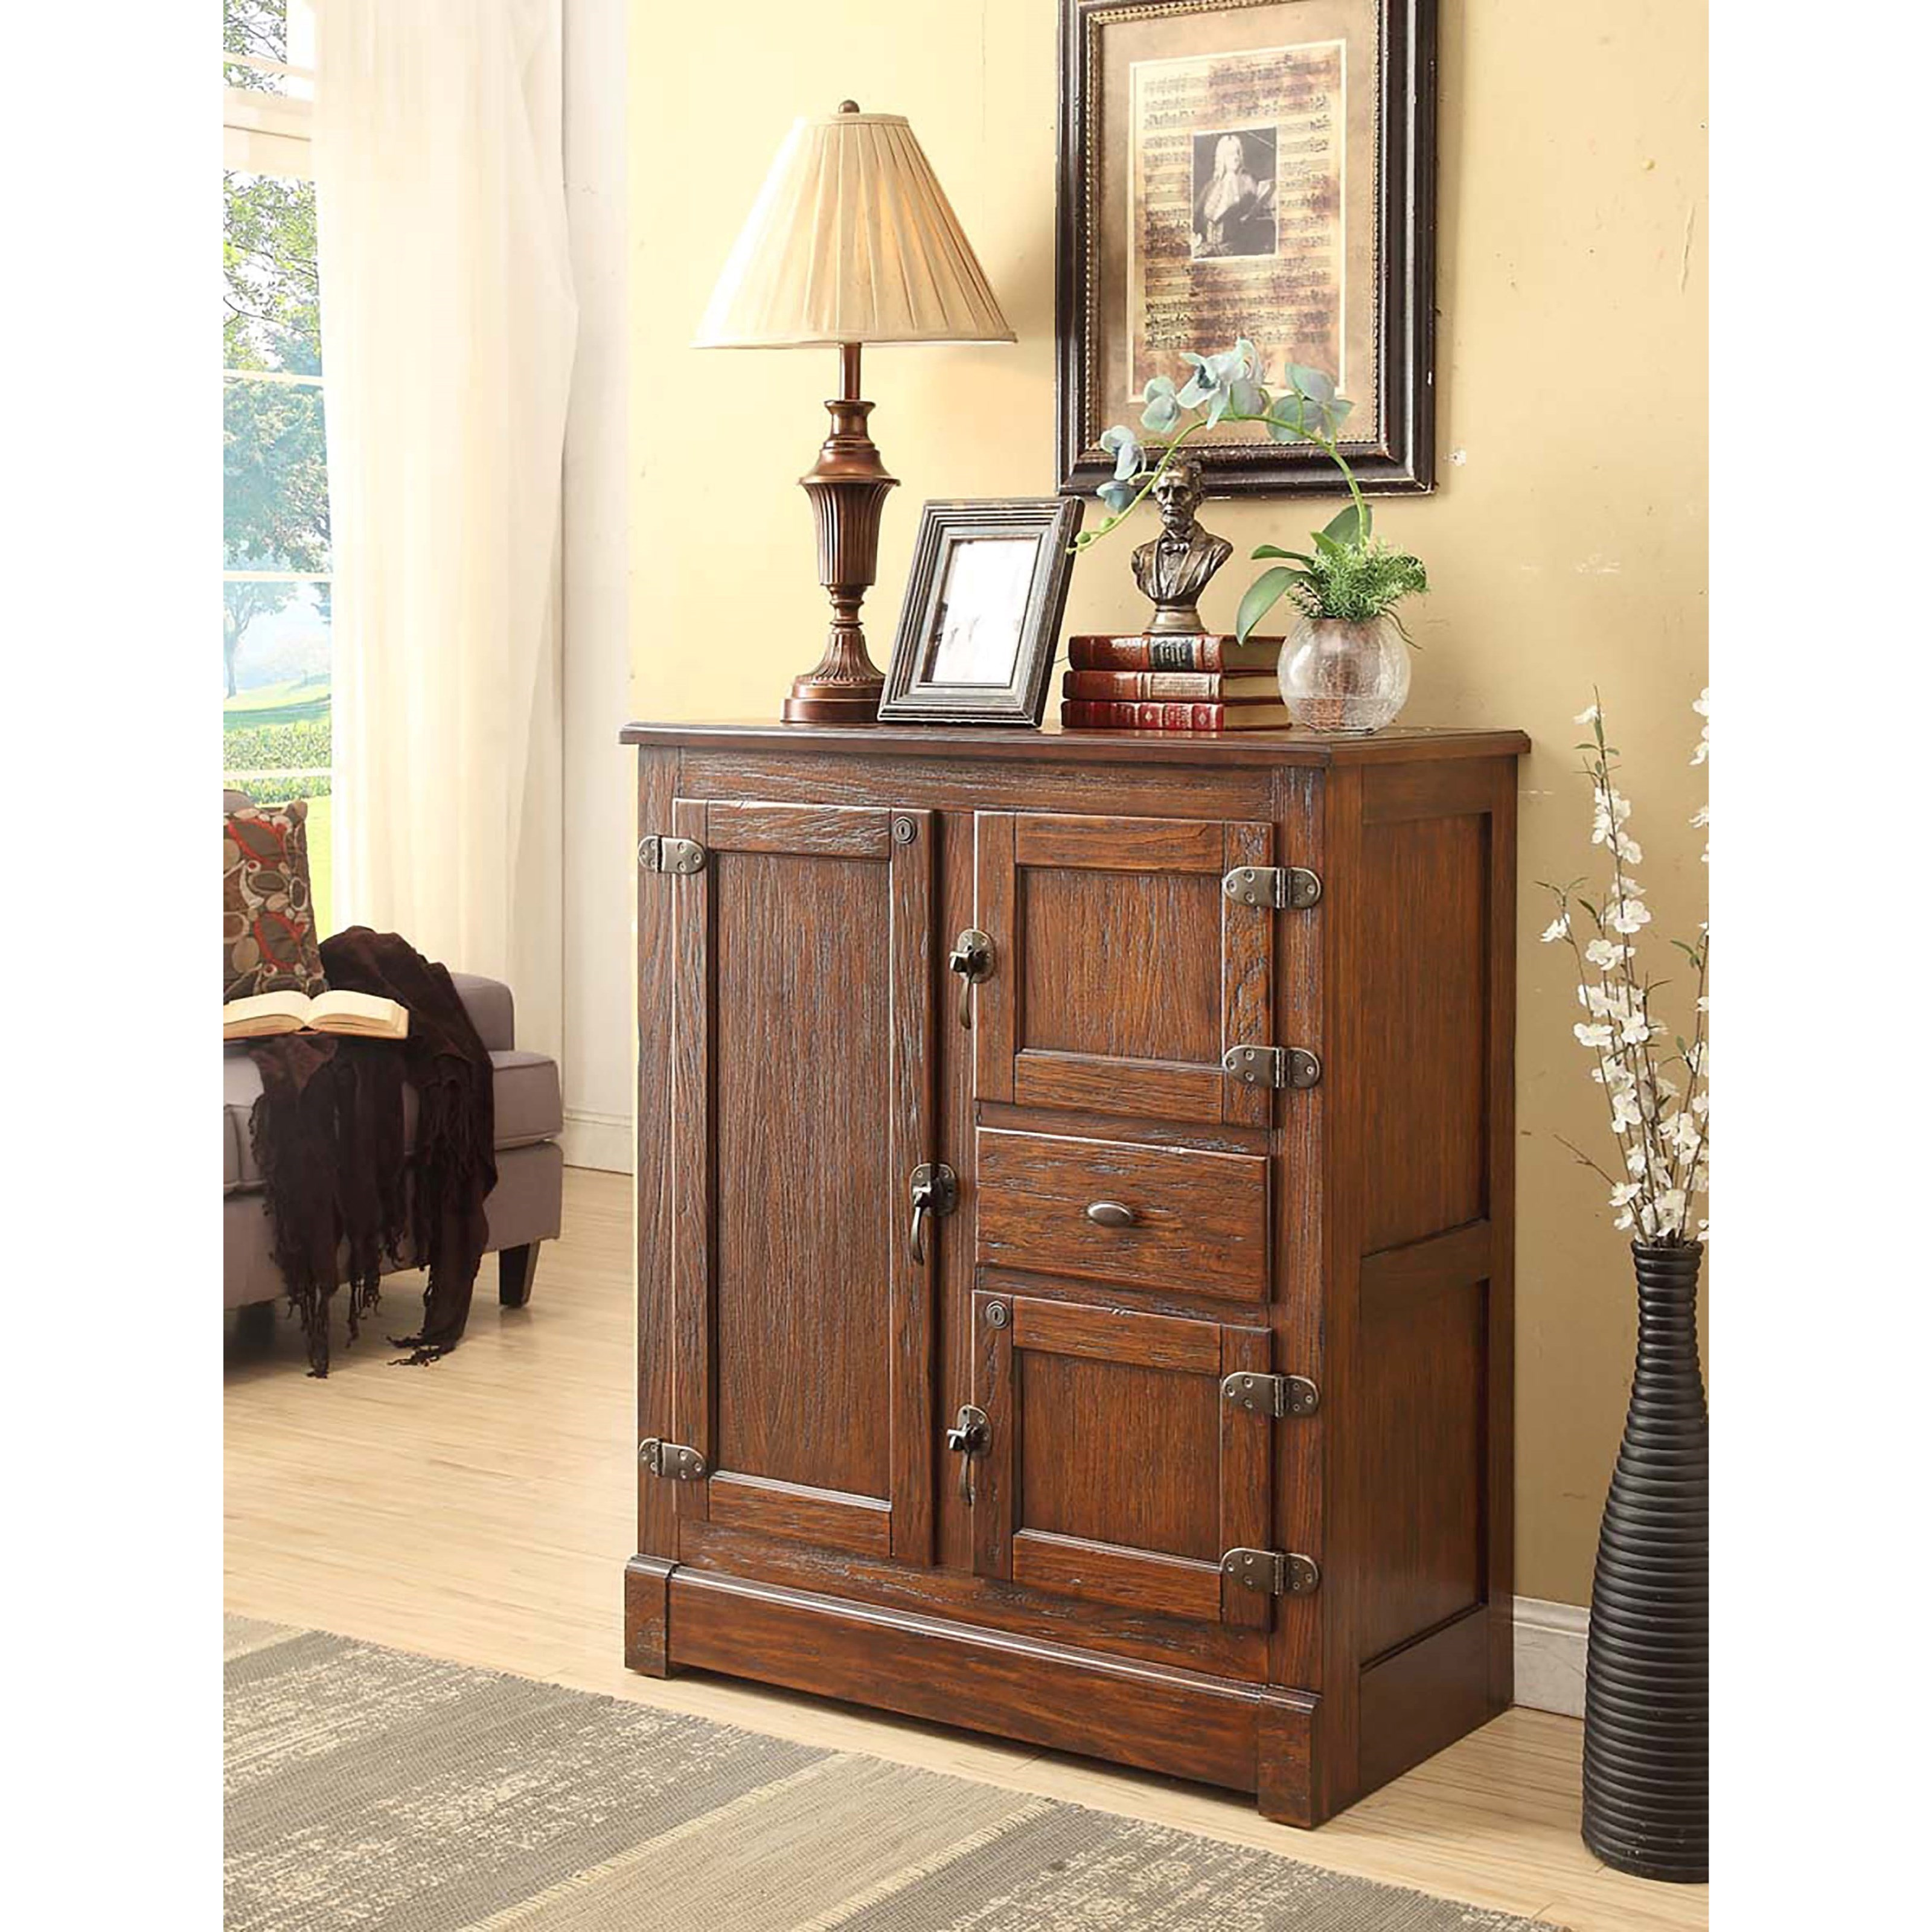 E.C.I. Furniture Spirit - 0506 Spirit Cabinet - Item Number: 0506-36-SC